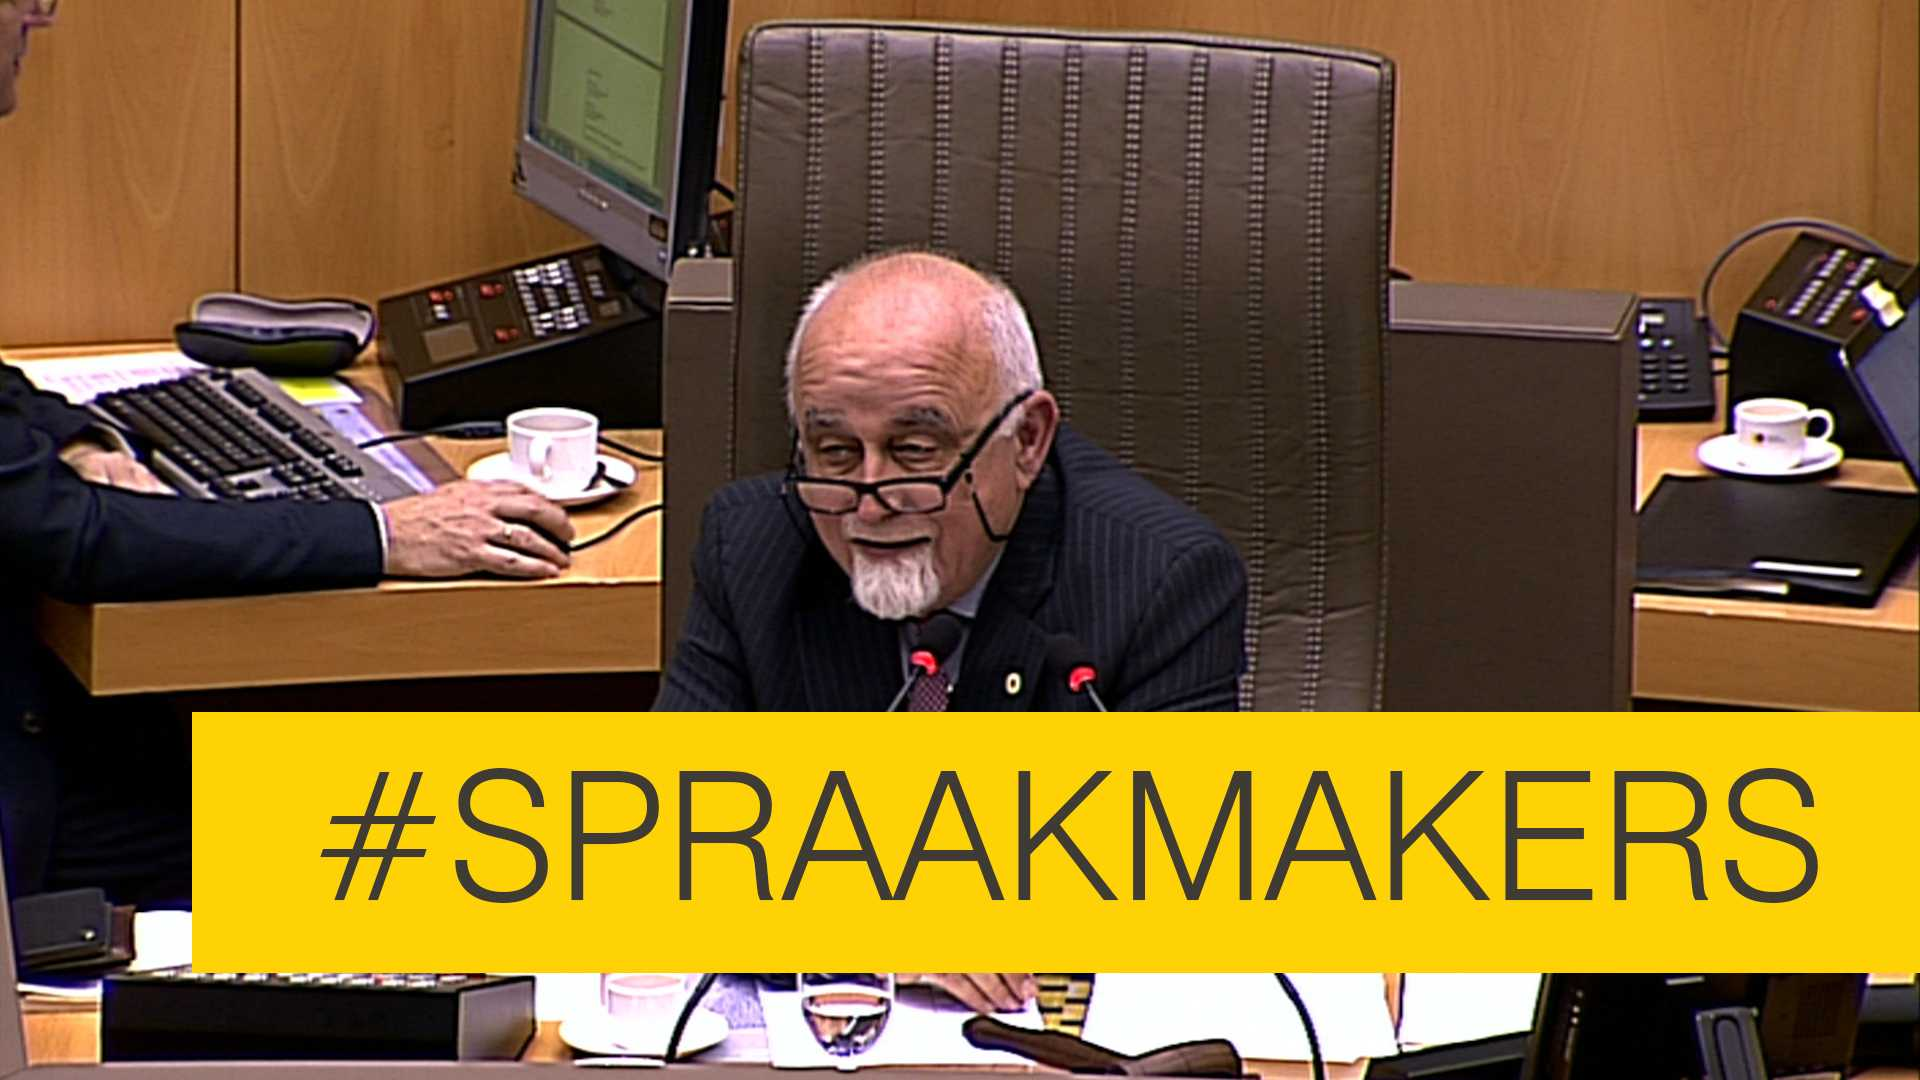 Spraakmakers, Jan Peumans